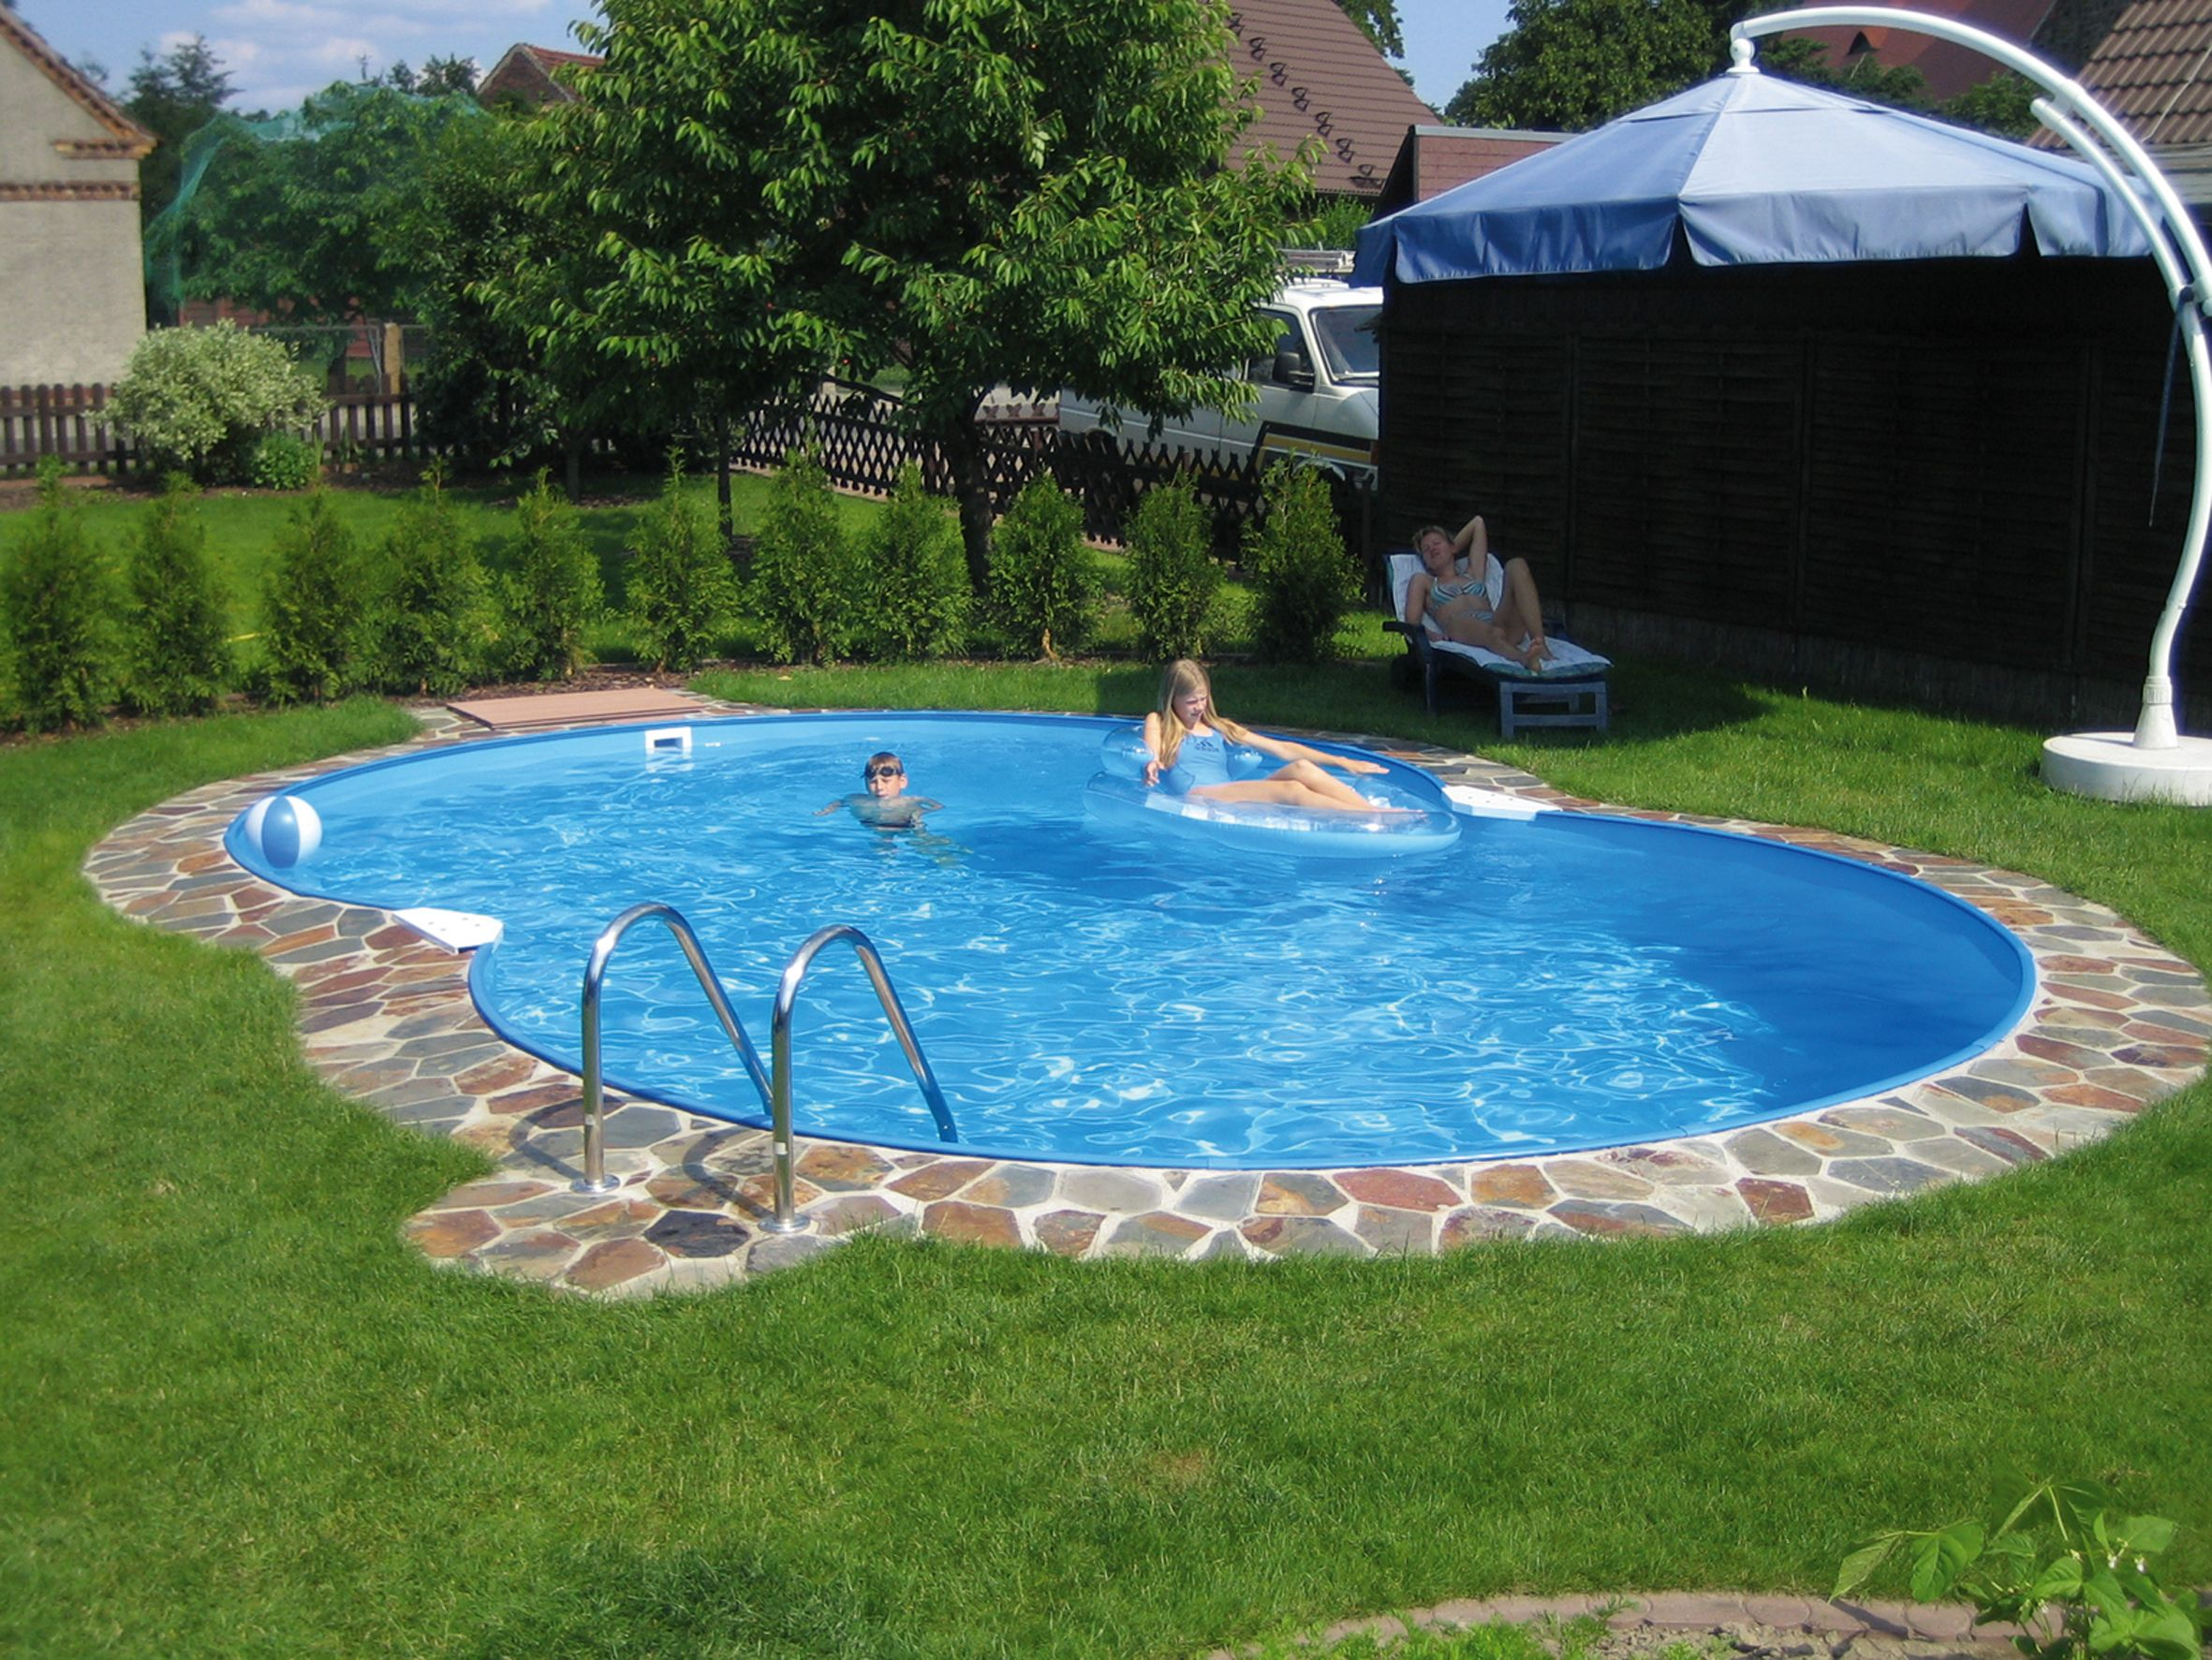 Backyard Landscaping Ideas Swimming Pool Design Pool Landscaping